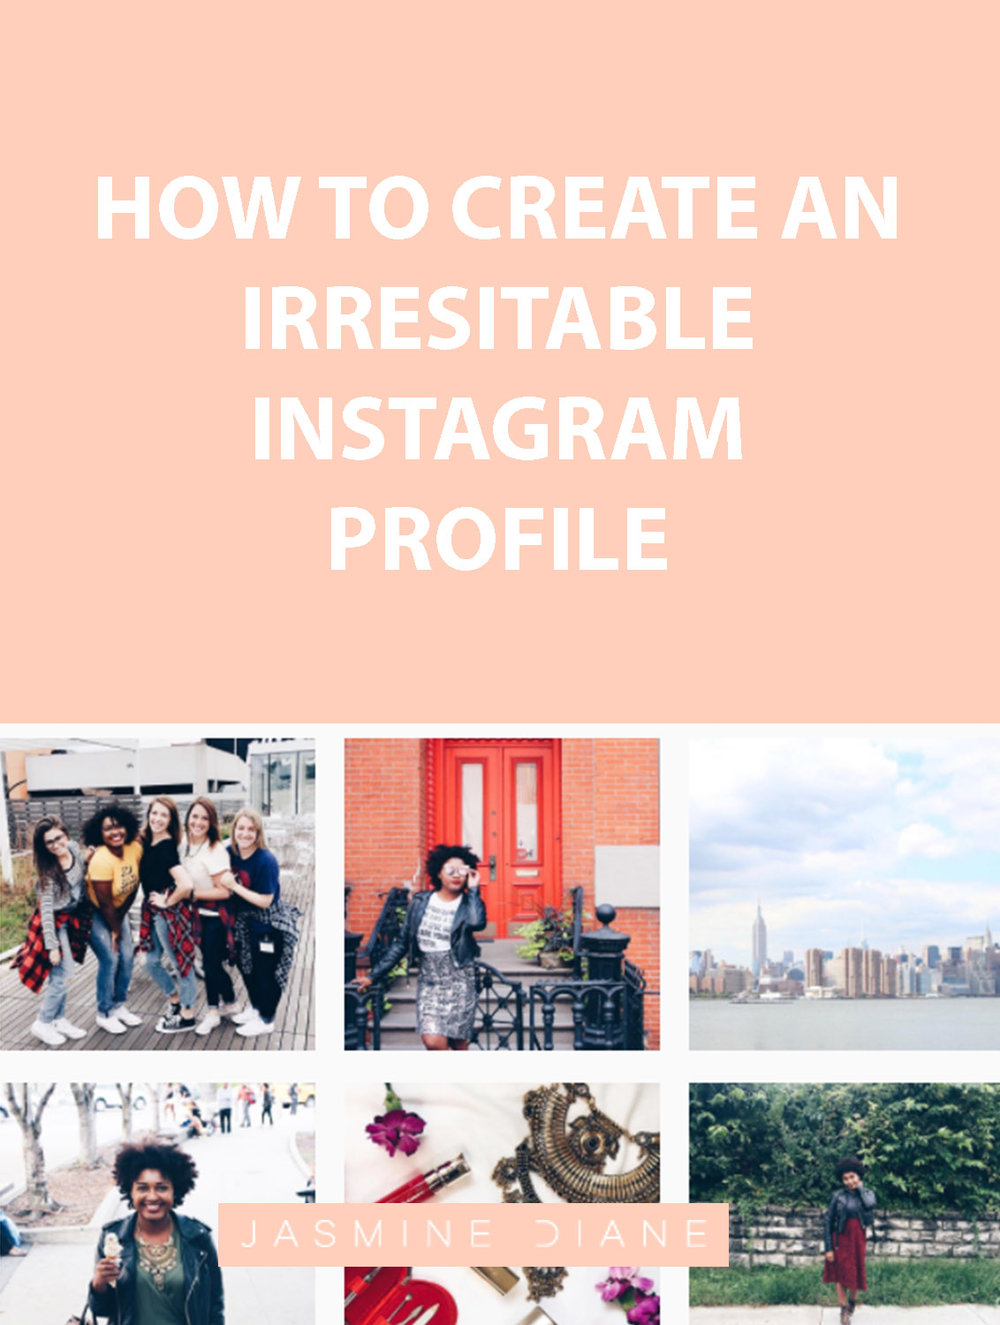 How to Create an Irresistible Instagram Profile